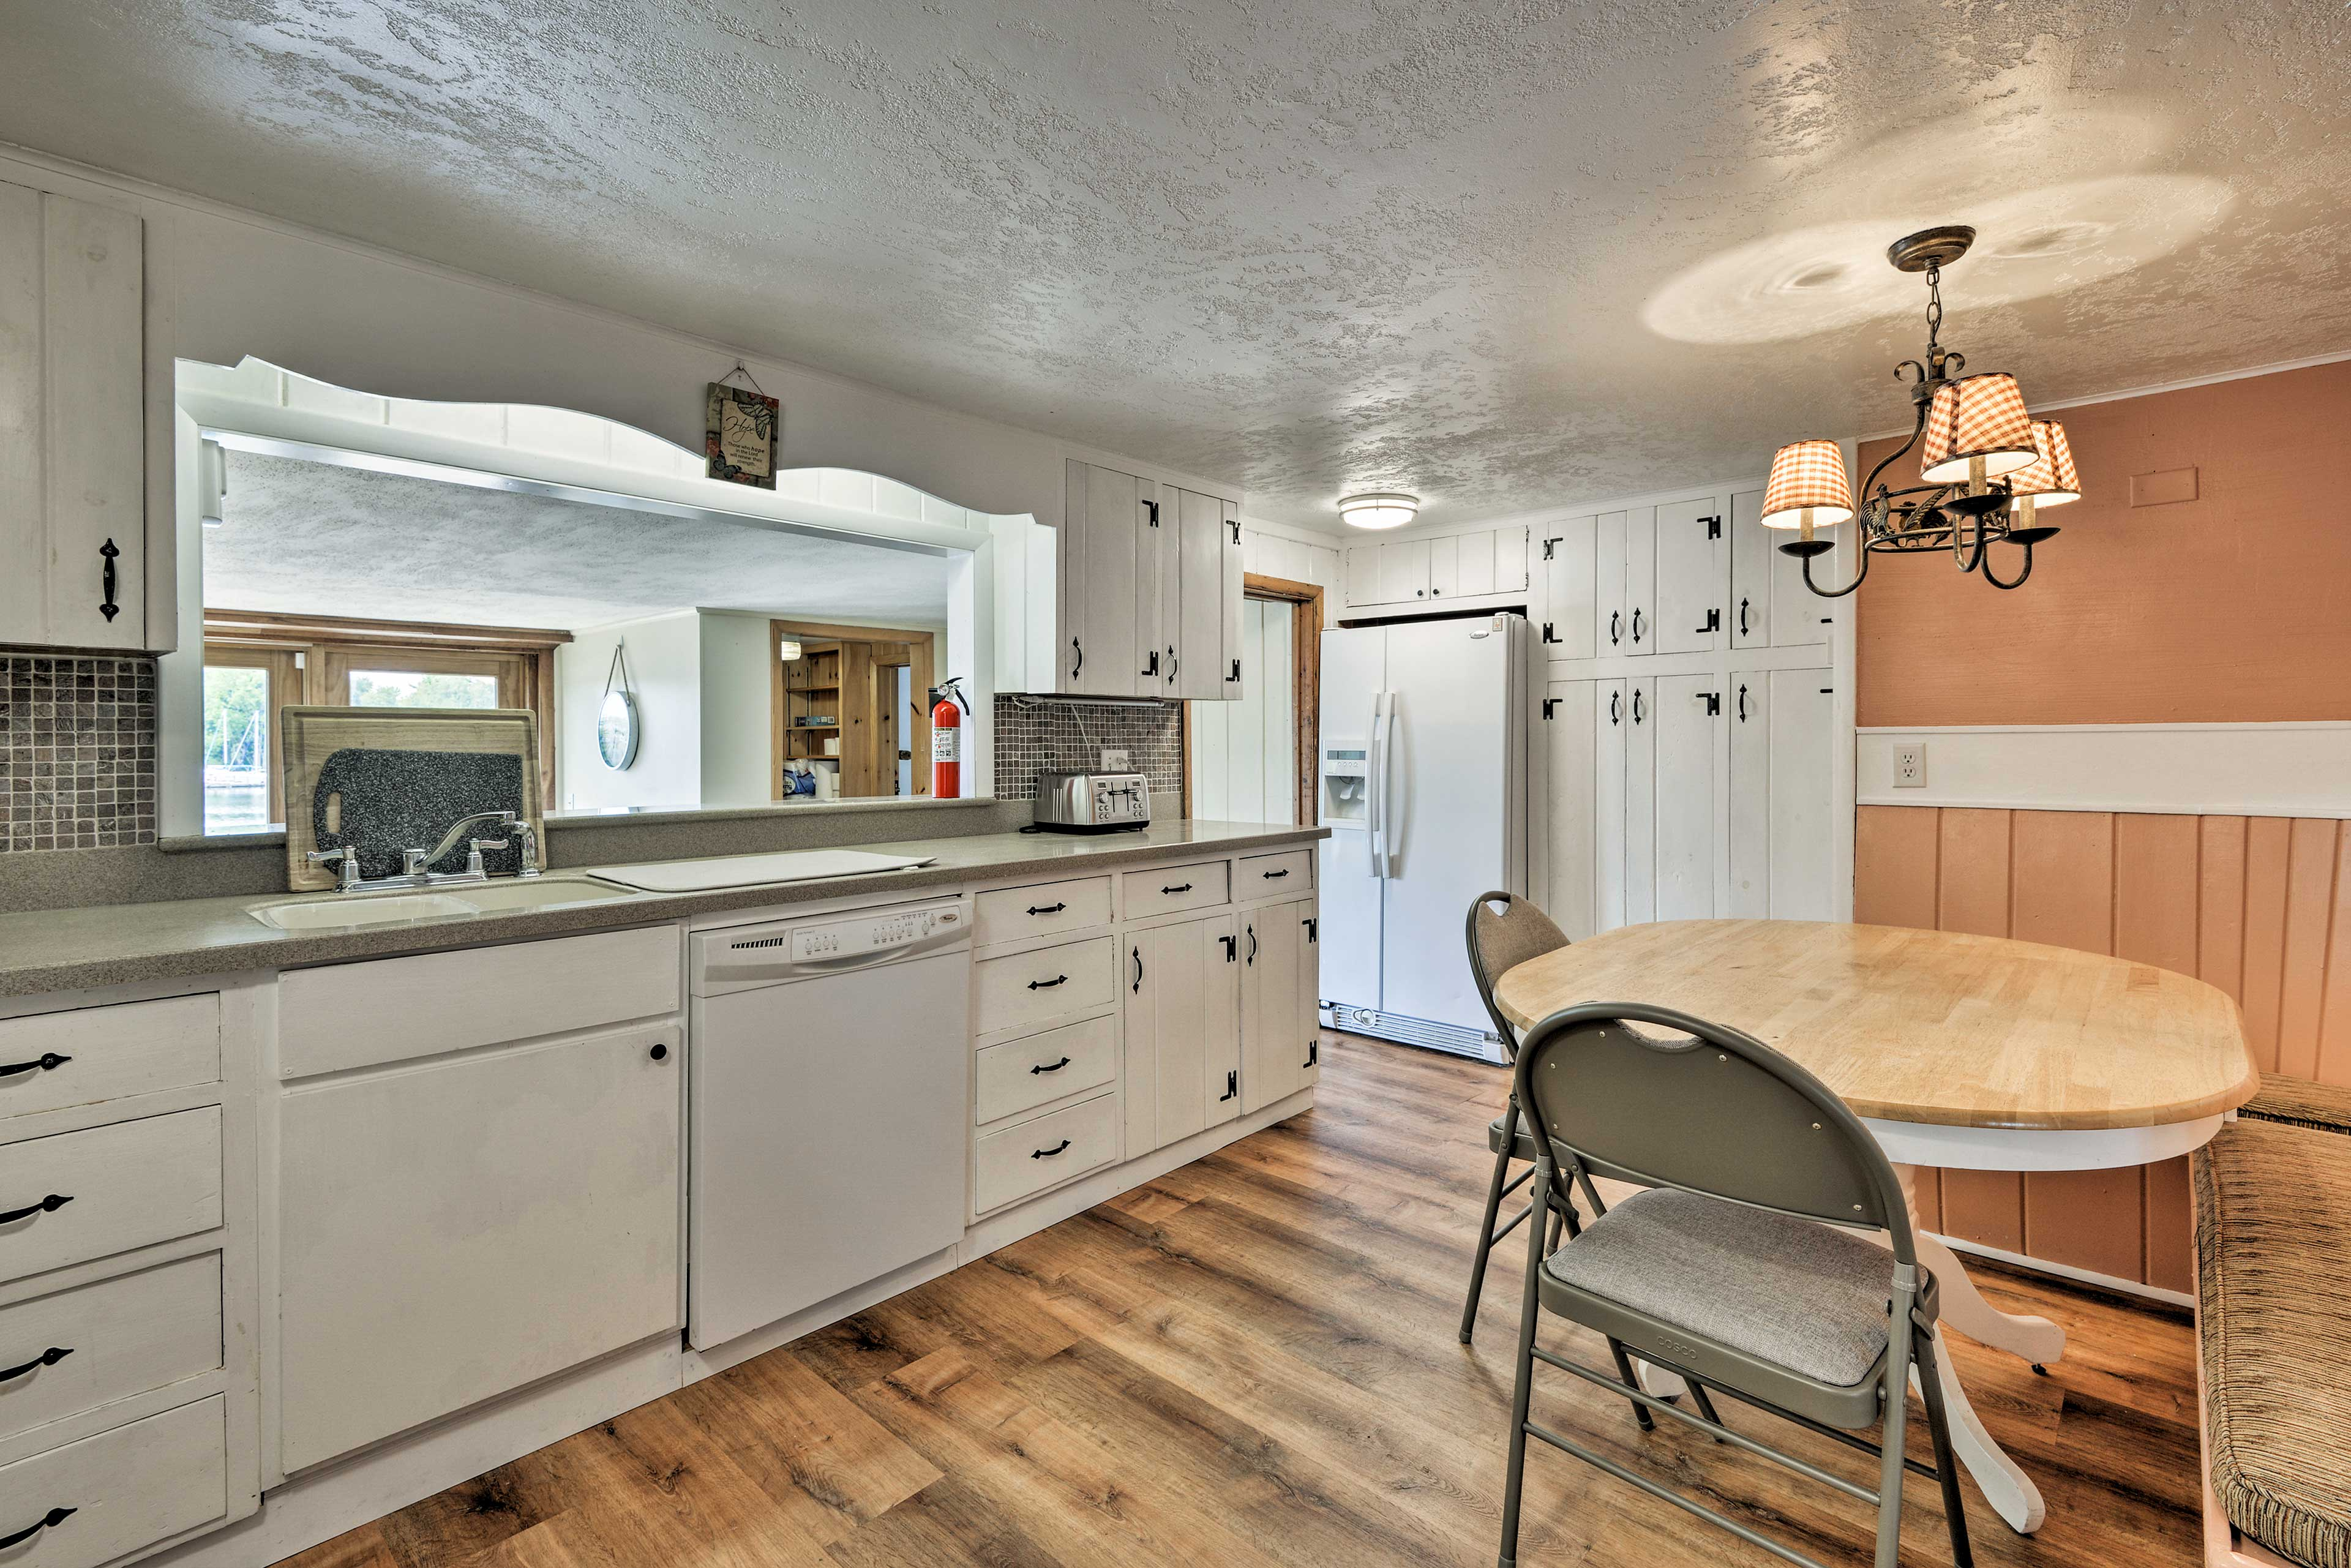 There's no need to eat out when you have this kitchen!